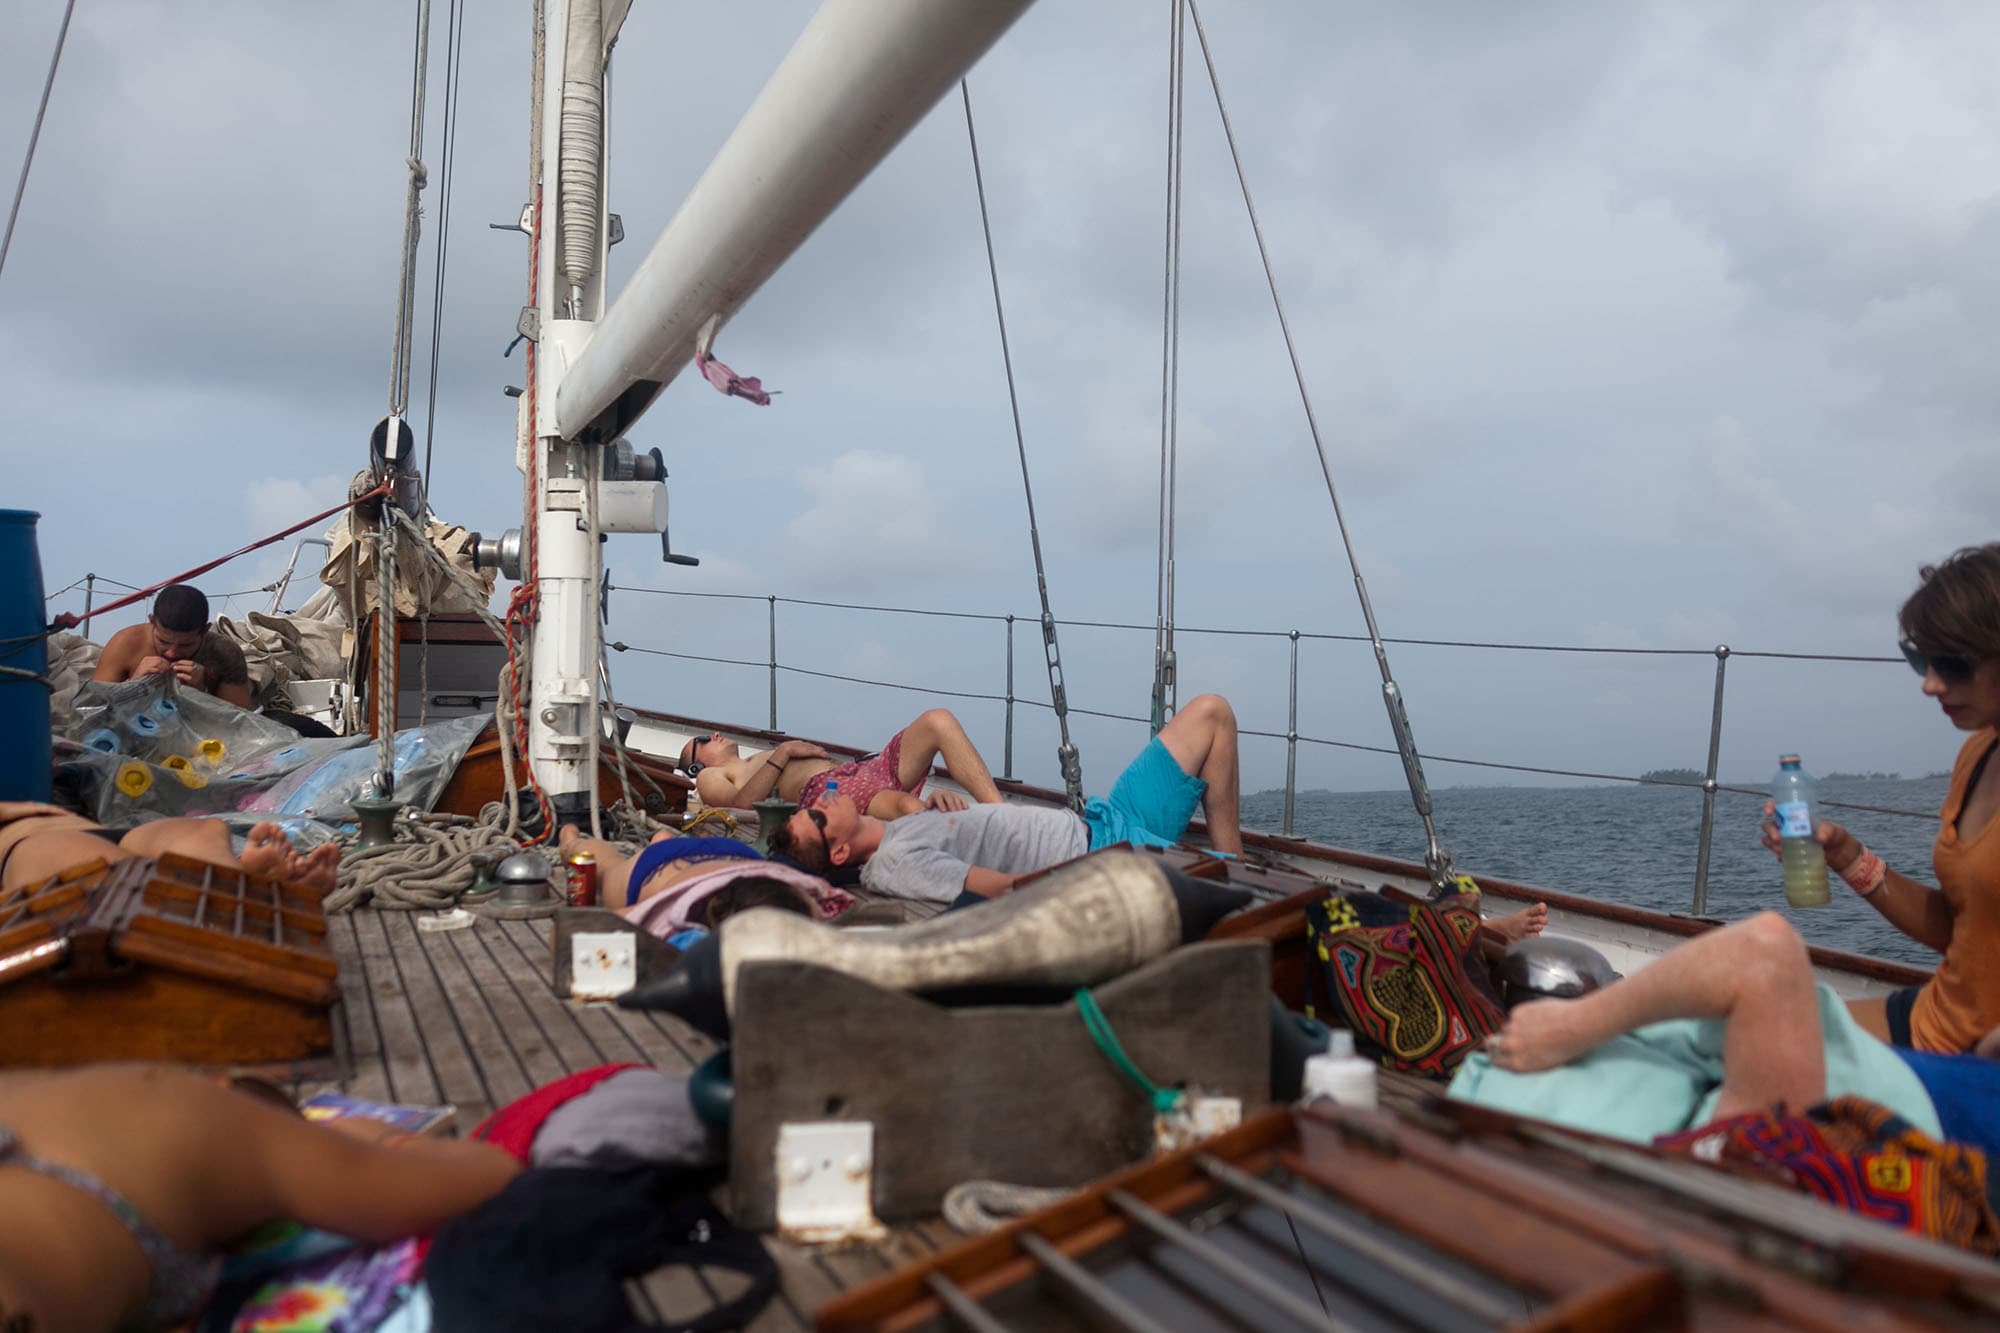 Sailing trip from Colombia to Cartagena, Colombia on the Gitana III